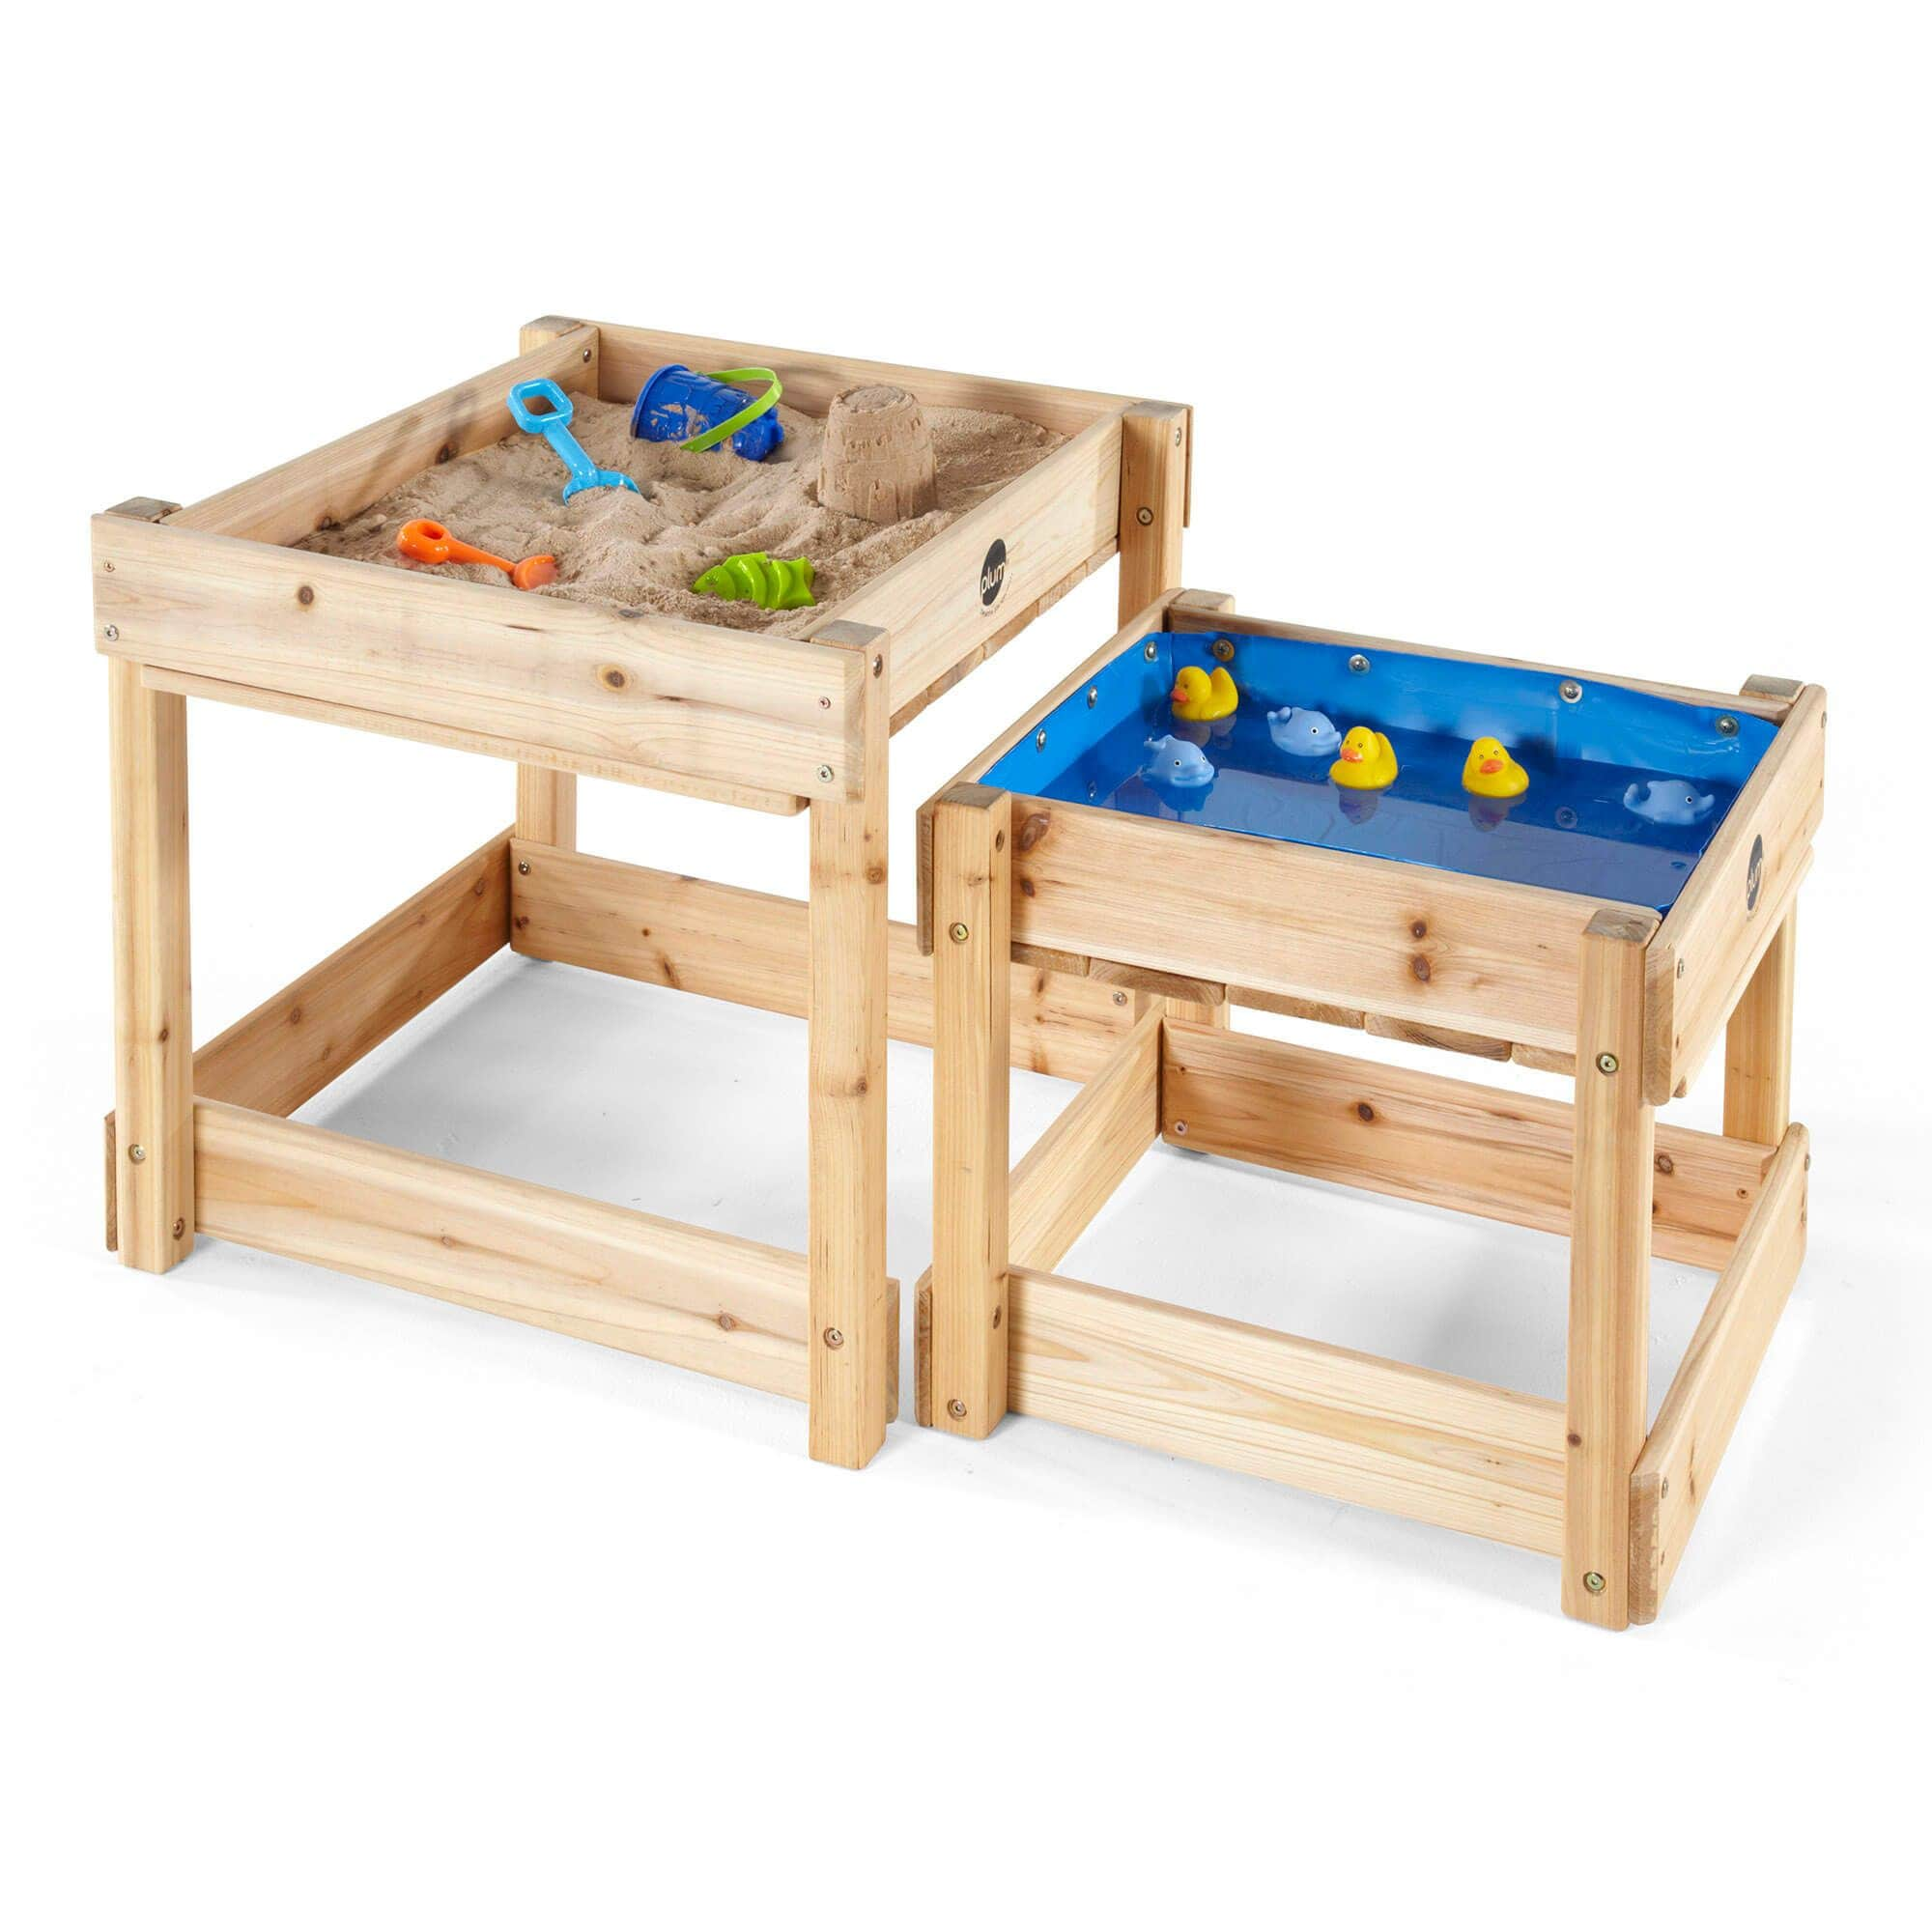 Sandy Bay Wooden Sand & Water Tables